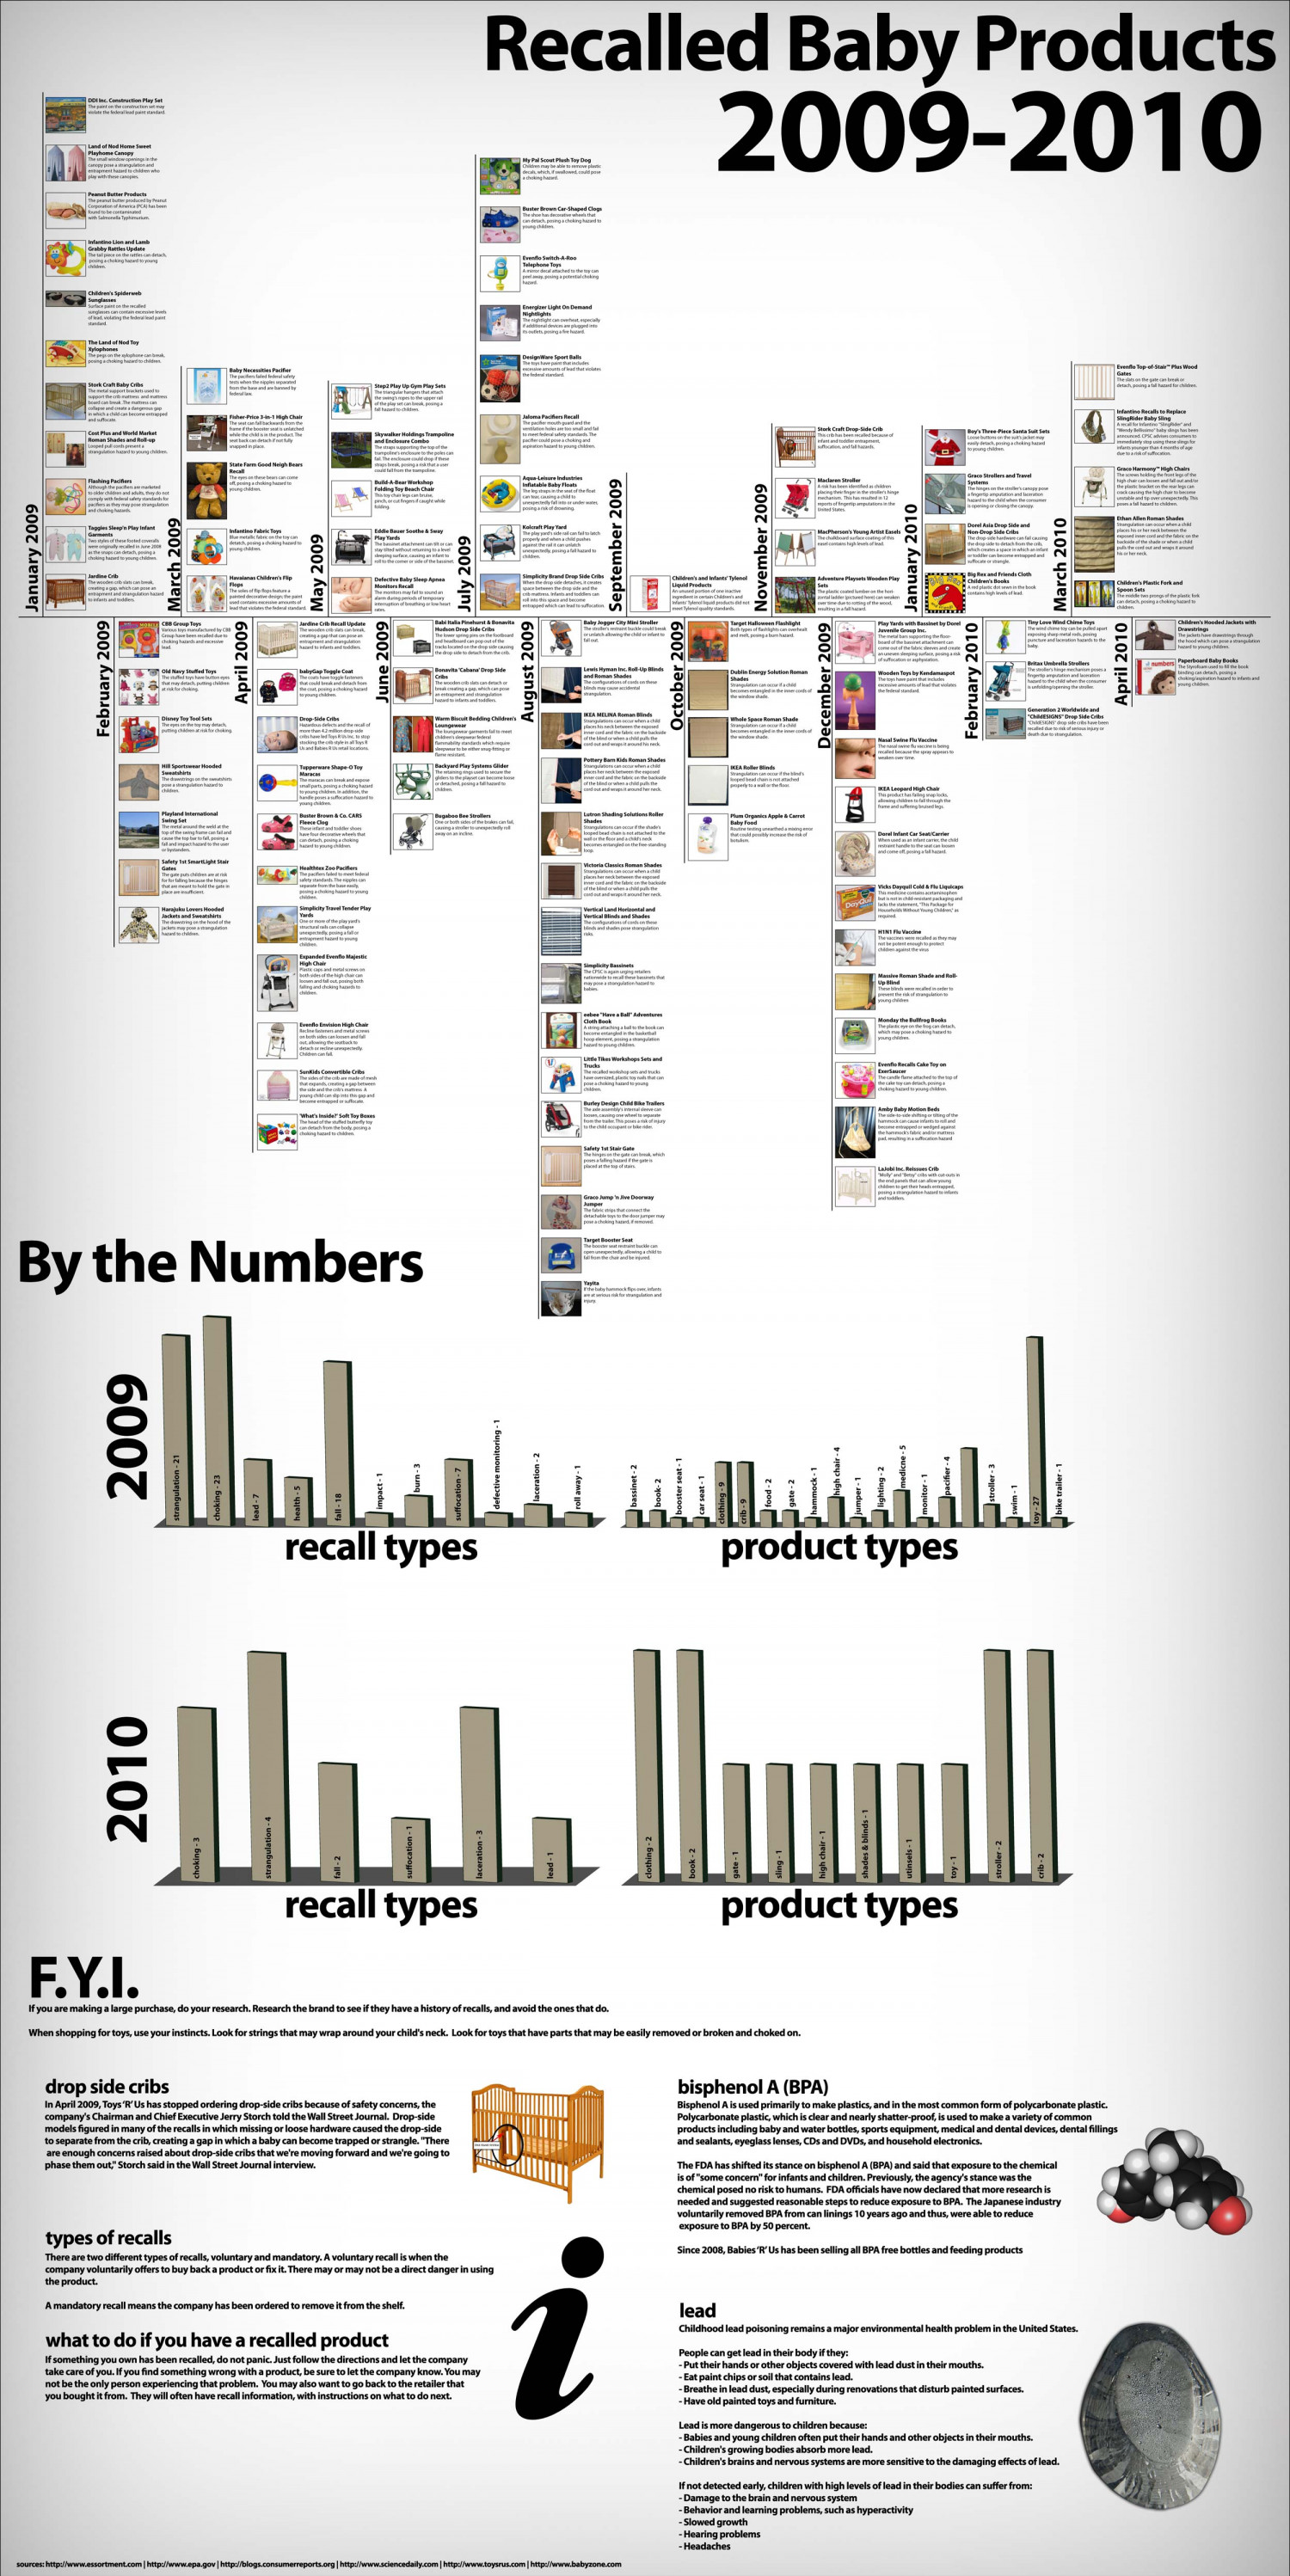 Recalled Baby Products 2009-2010 Infographic